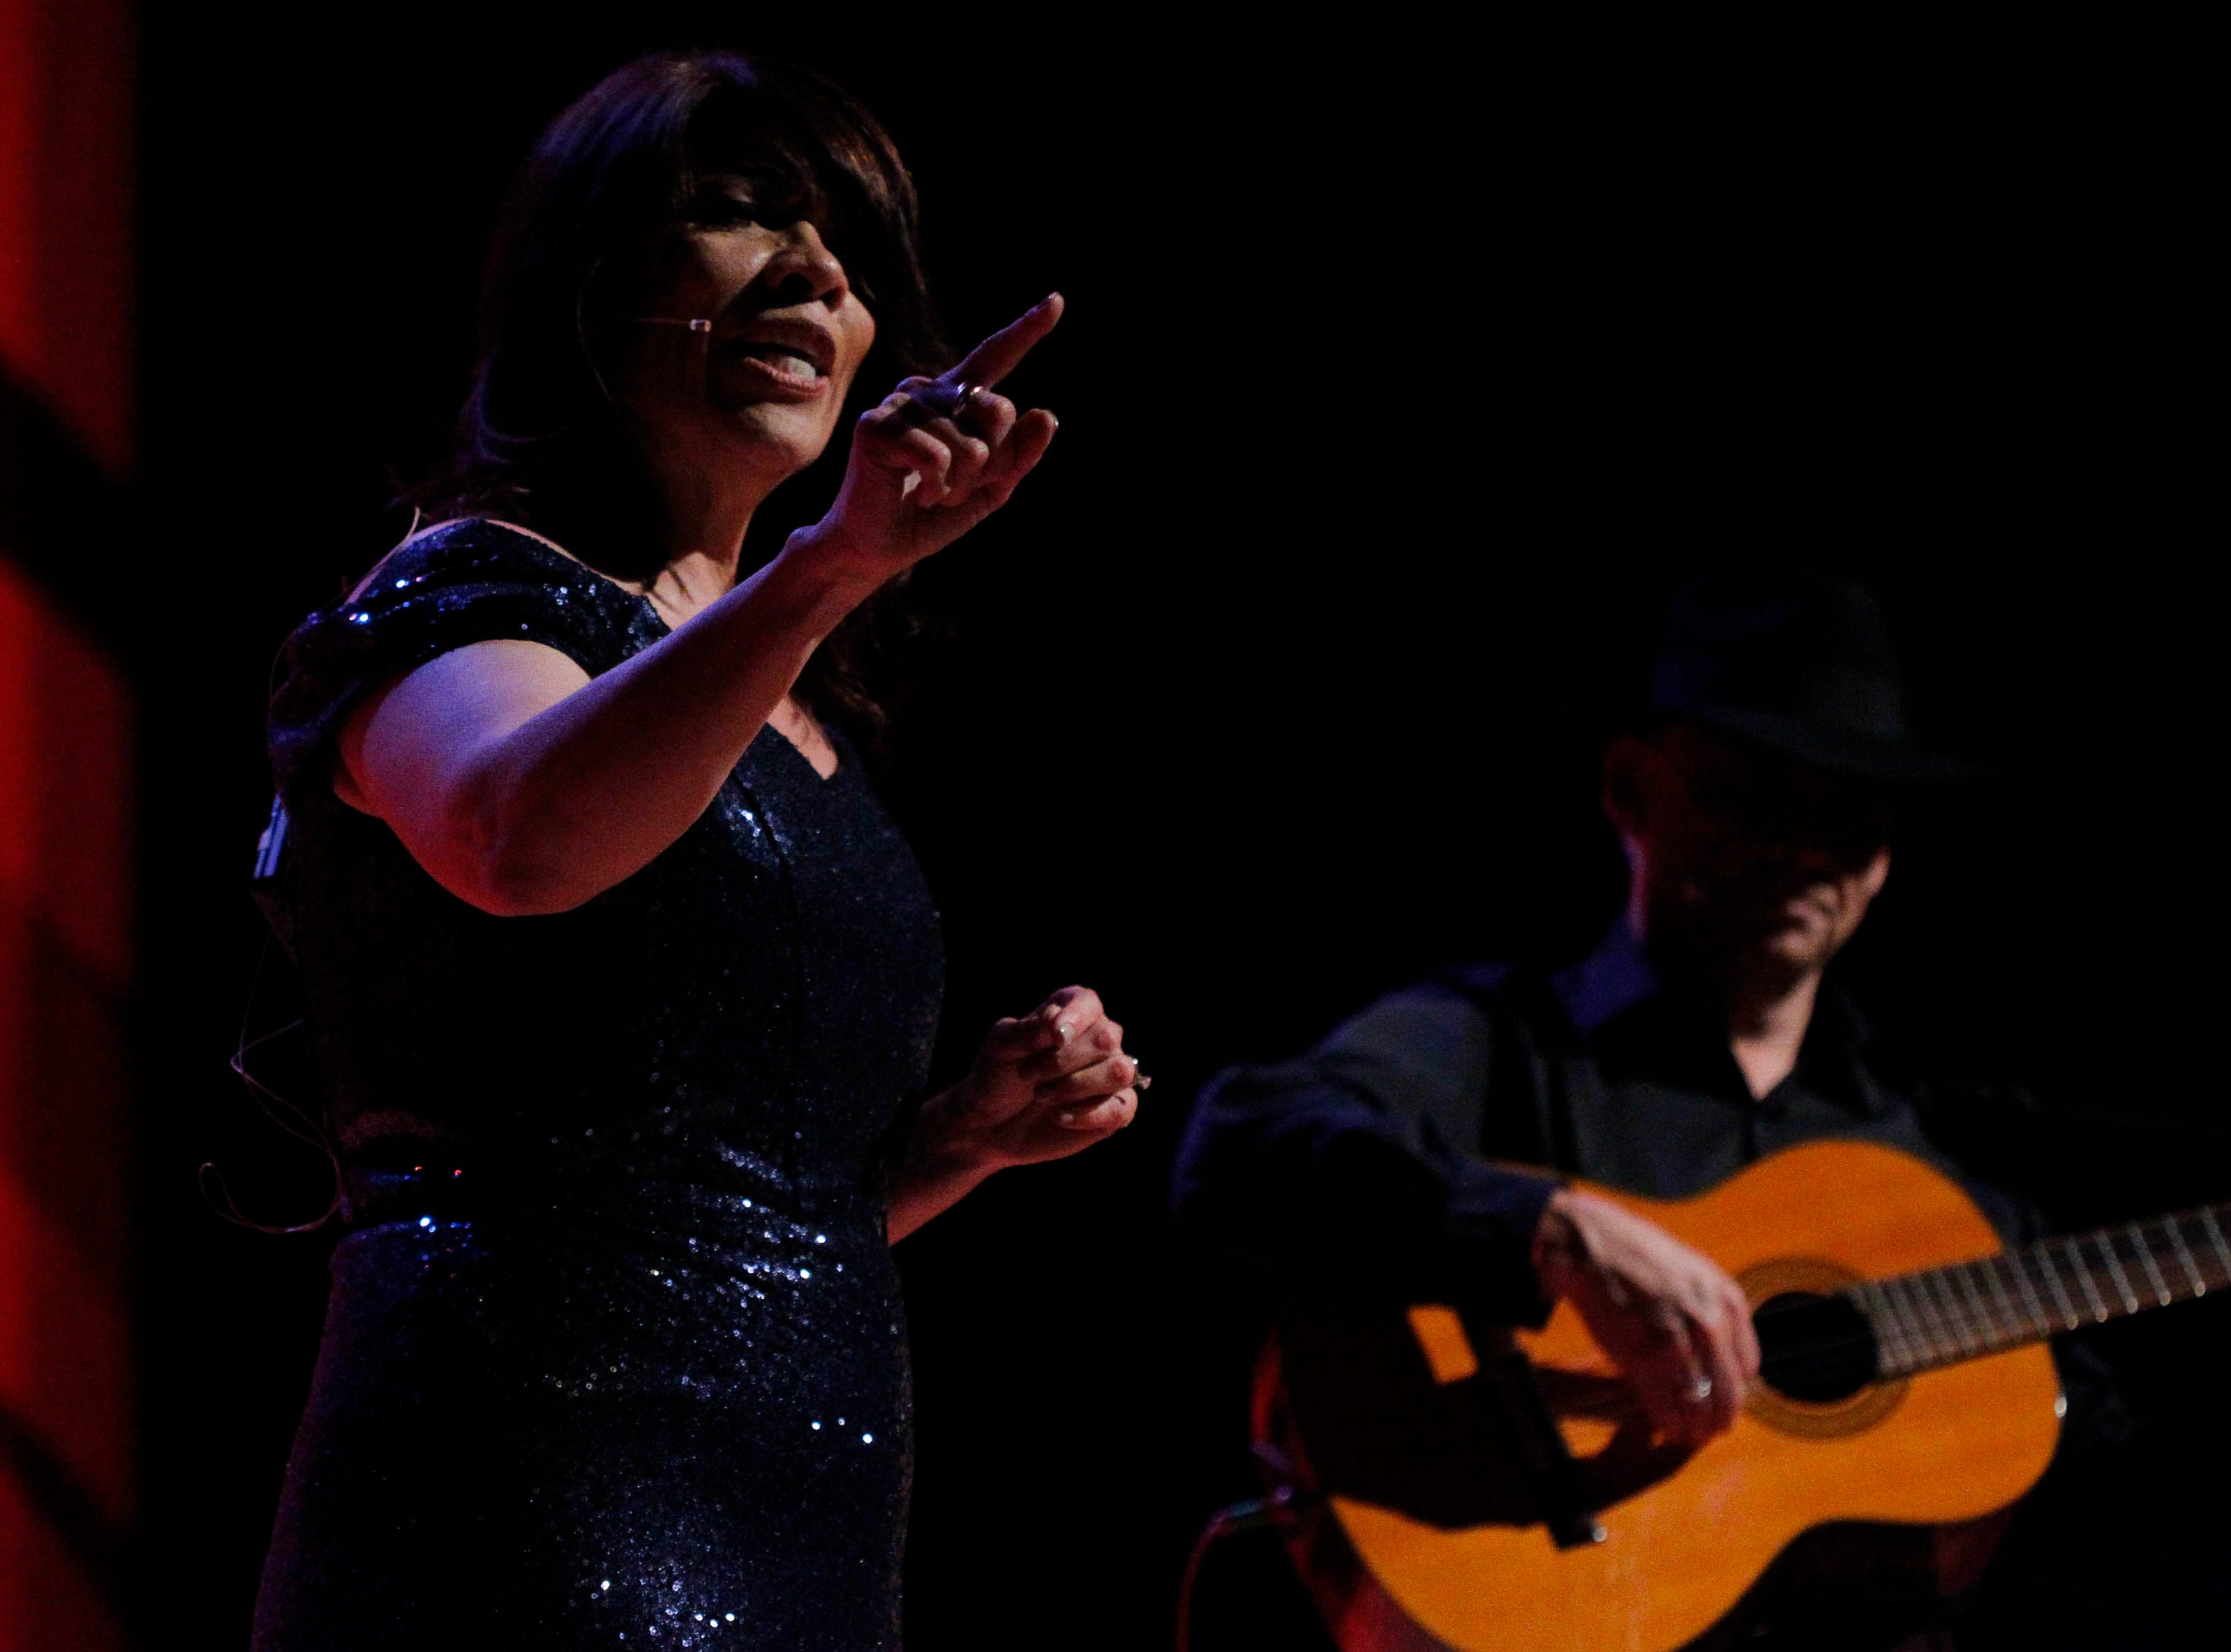 Adele Castillo performs during the 12th annual Noche Bohemia at Sherwood Hall on Saturday, April 27, 2019 in Salinas, Calif.